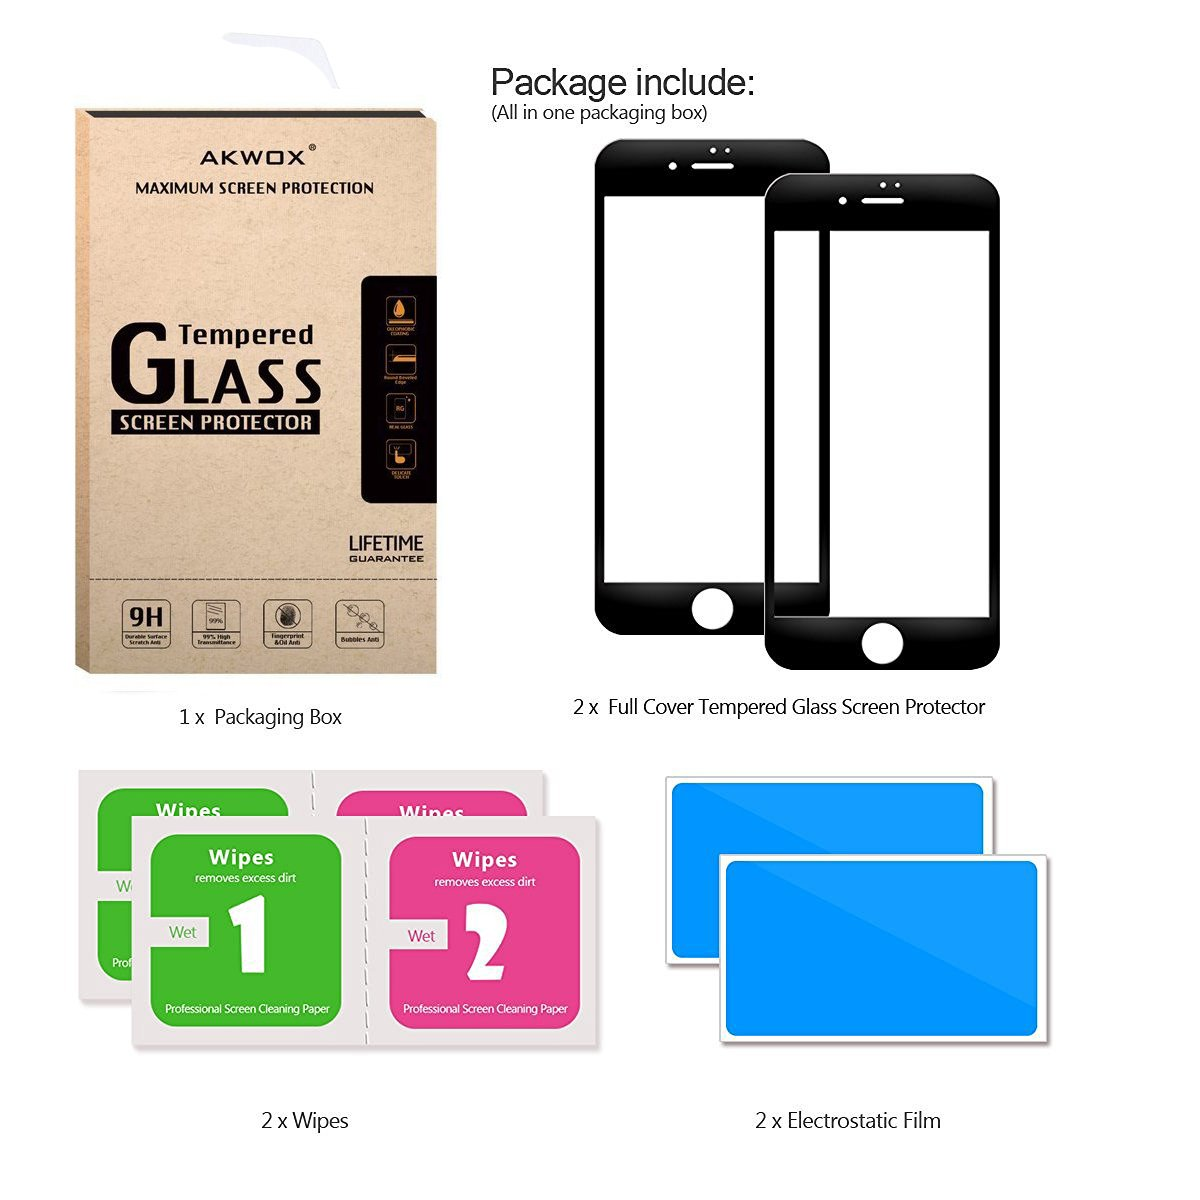 (Pack of 2) Screen Protector for iPhone 7 Plus 8 Plus, Akwox Full Cover iPhone 7 Plus 8 Plus Tempered Glass Screen Protector with ABS Curved Edge Frame, Anti-Fingerprint (Black) by AKWOX (Image #6)